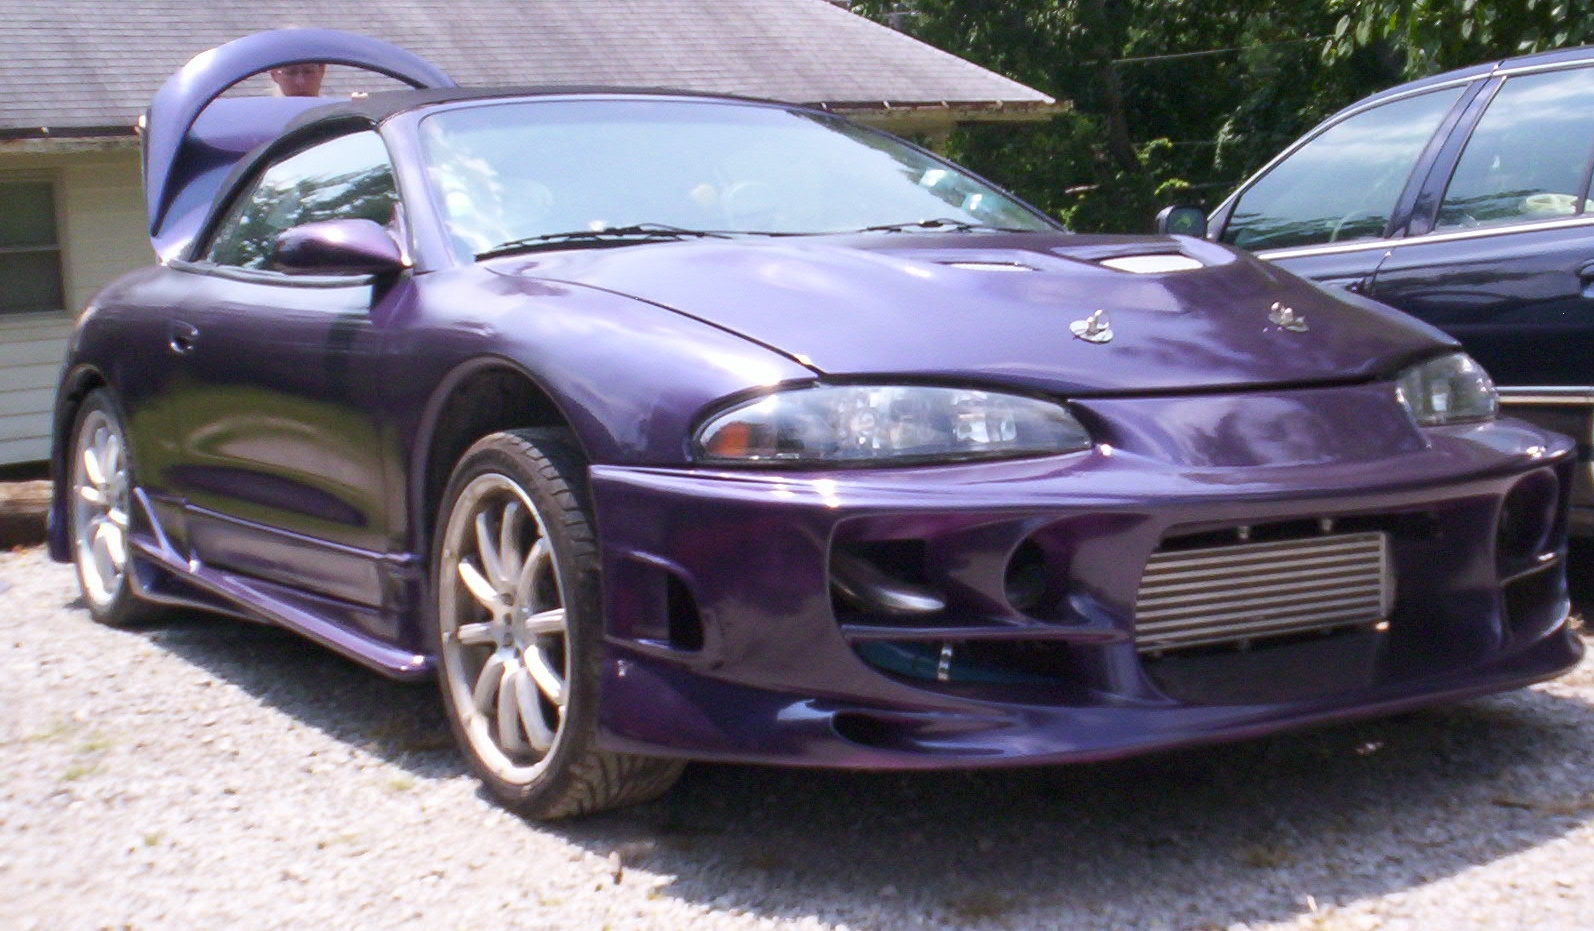 1999 Mitsubishi Eclipse Convertible - Viewing Gallery